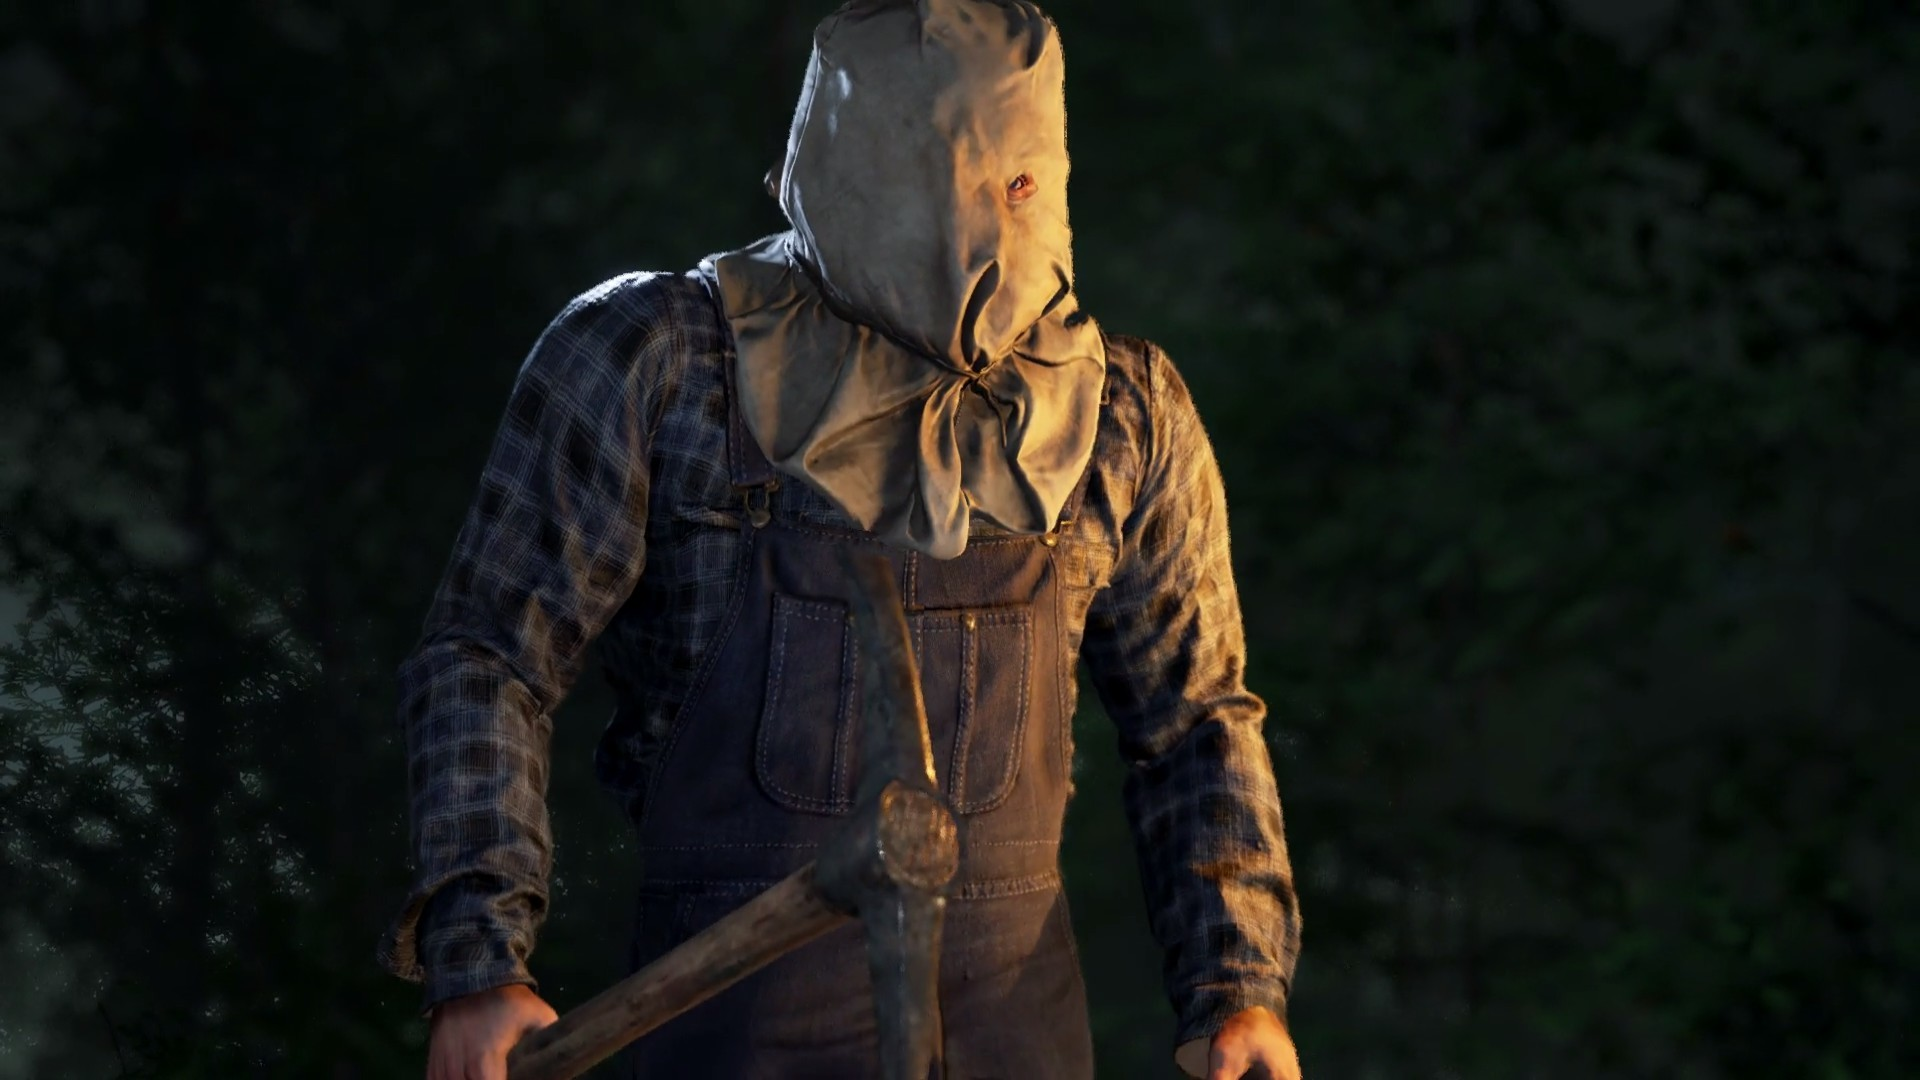 Friday the 13th pictures wallpaper 81 images - Friday the thirteenth wallpaper ...